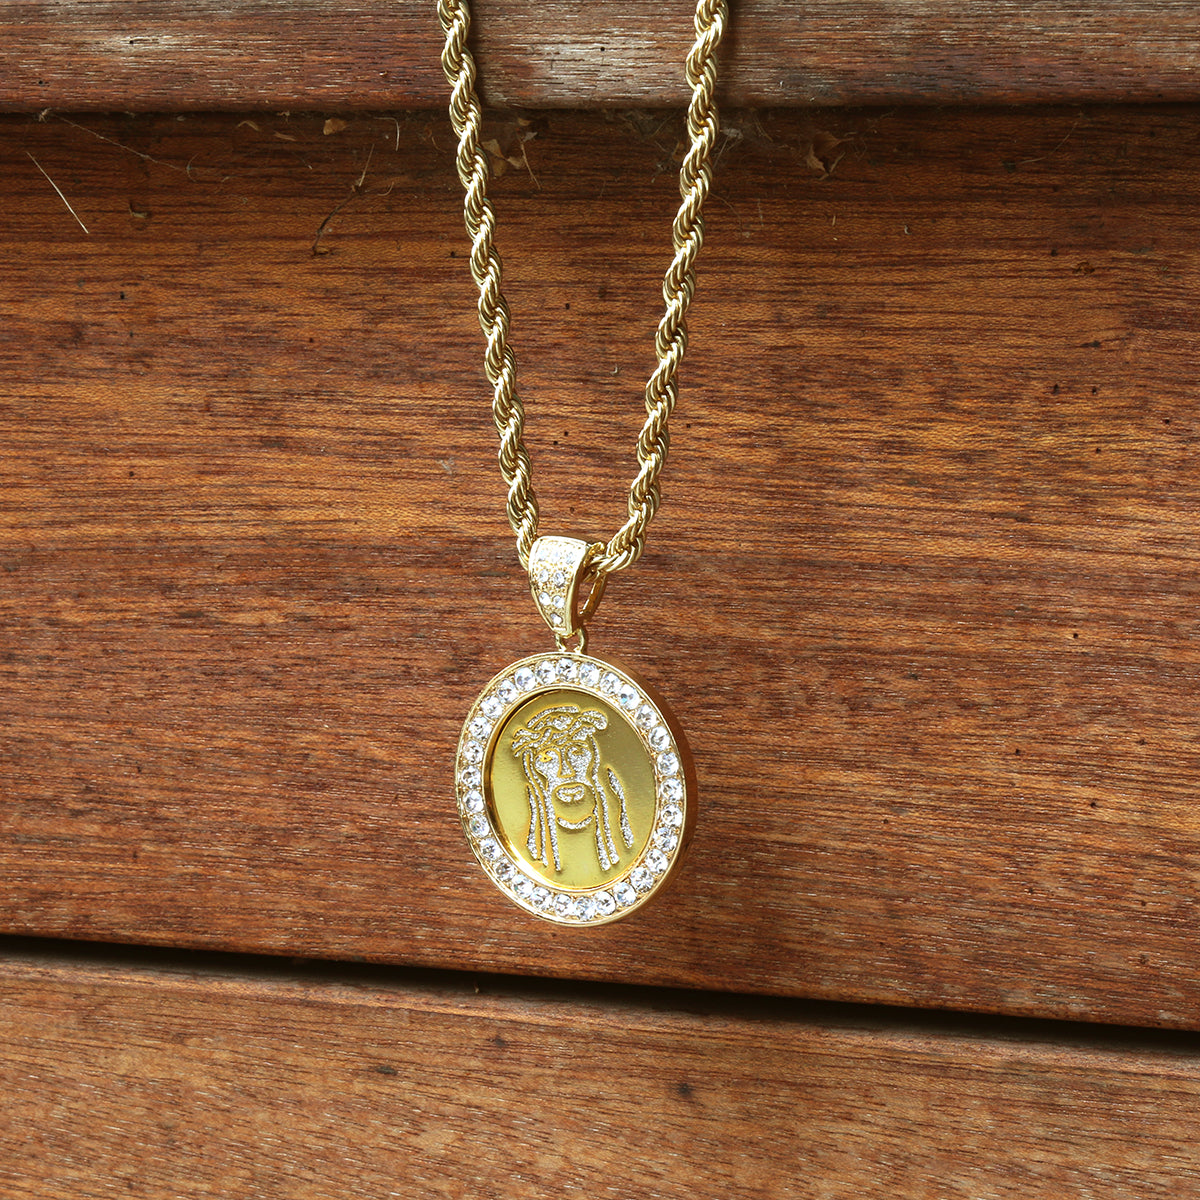 14k Gold Filled Fully Ice Out Round Mirror Jesus2 Pendant  with Rope Chain